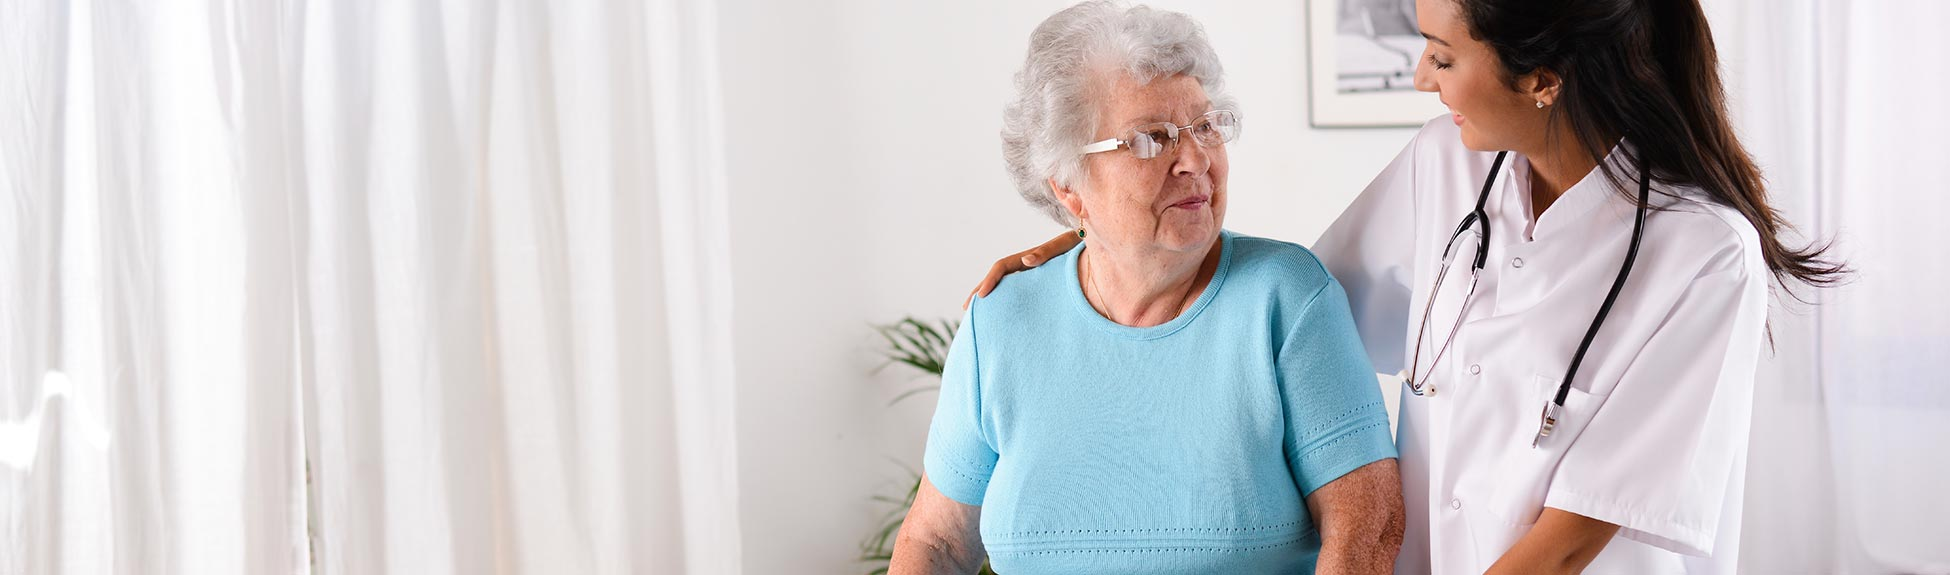 Home Personal Care and Nursing Services - Houston, TX